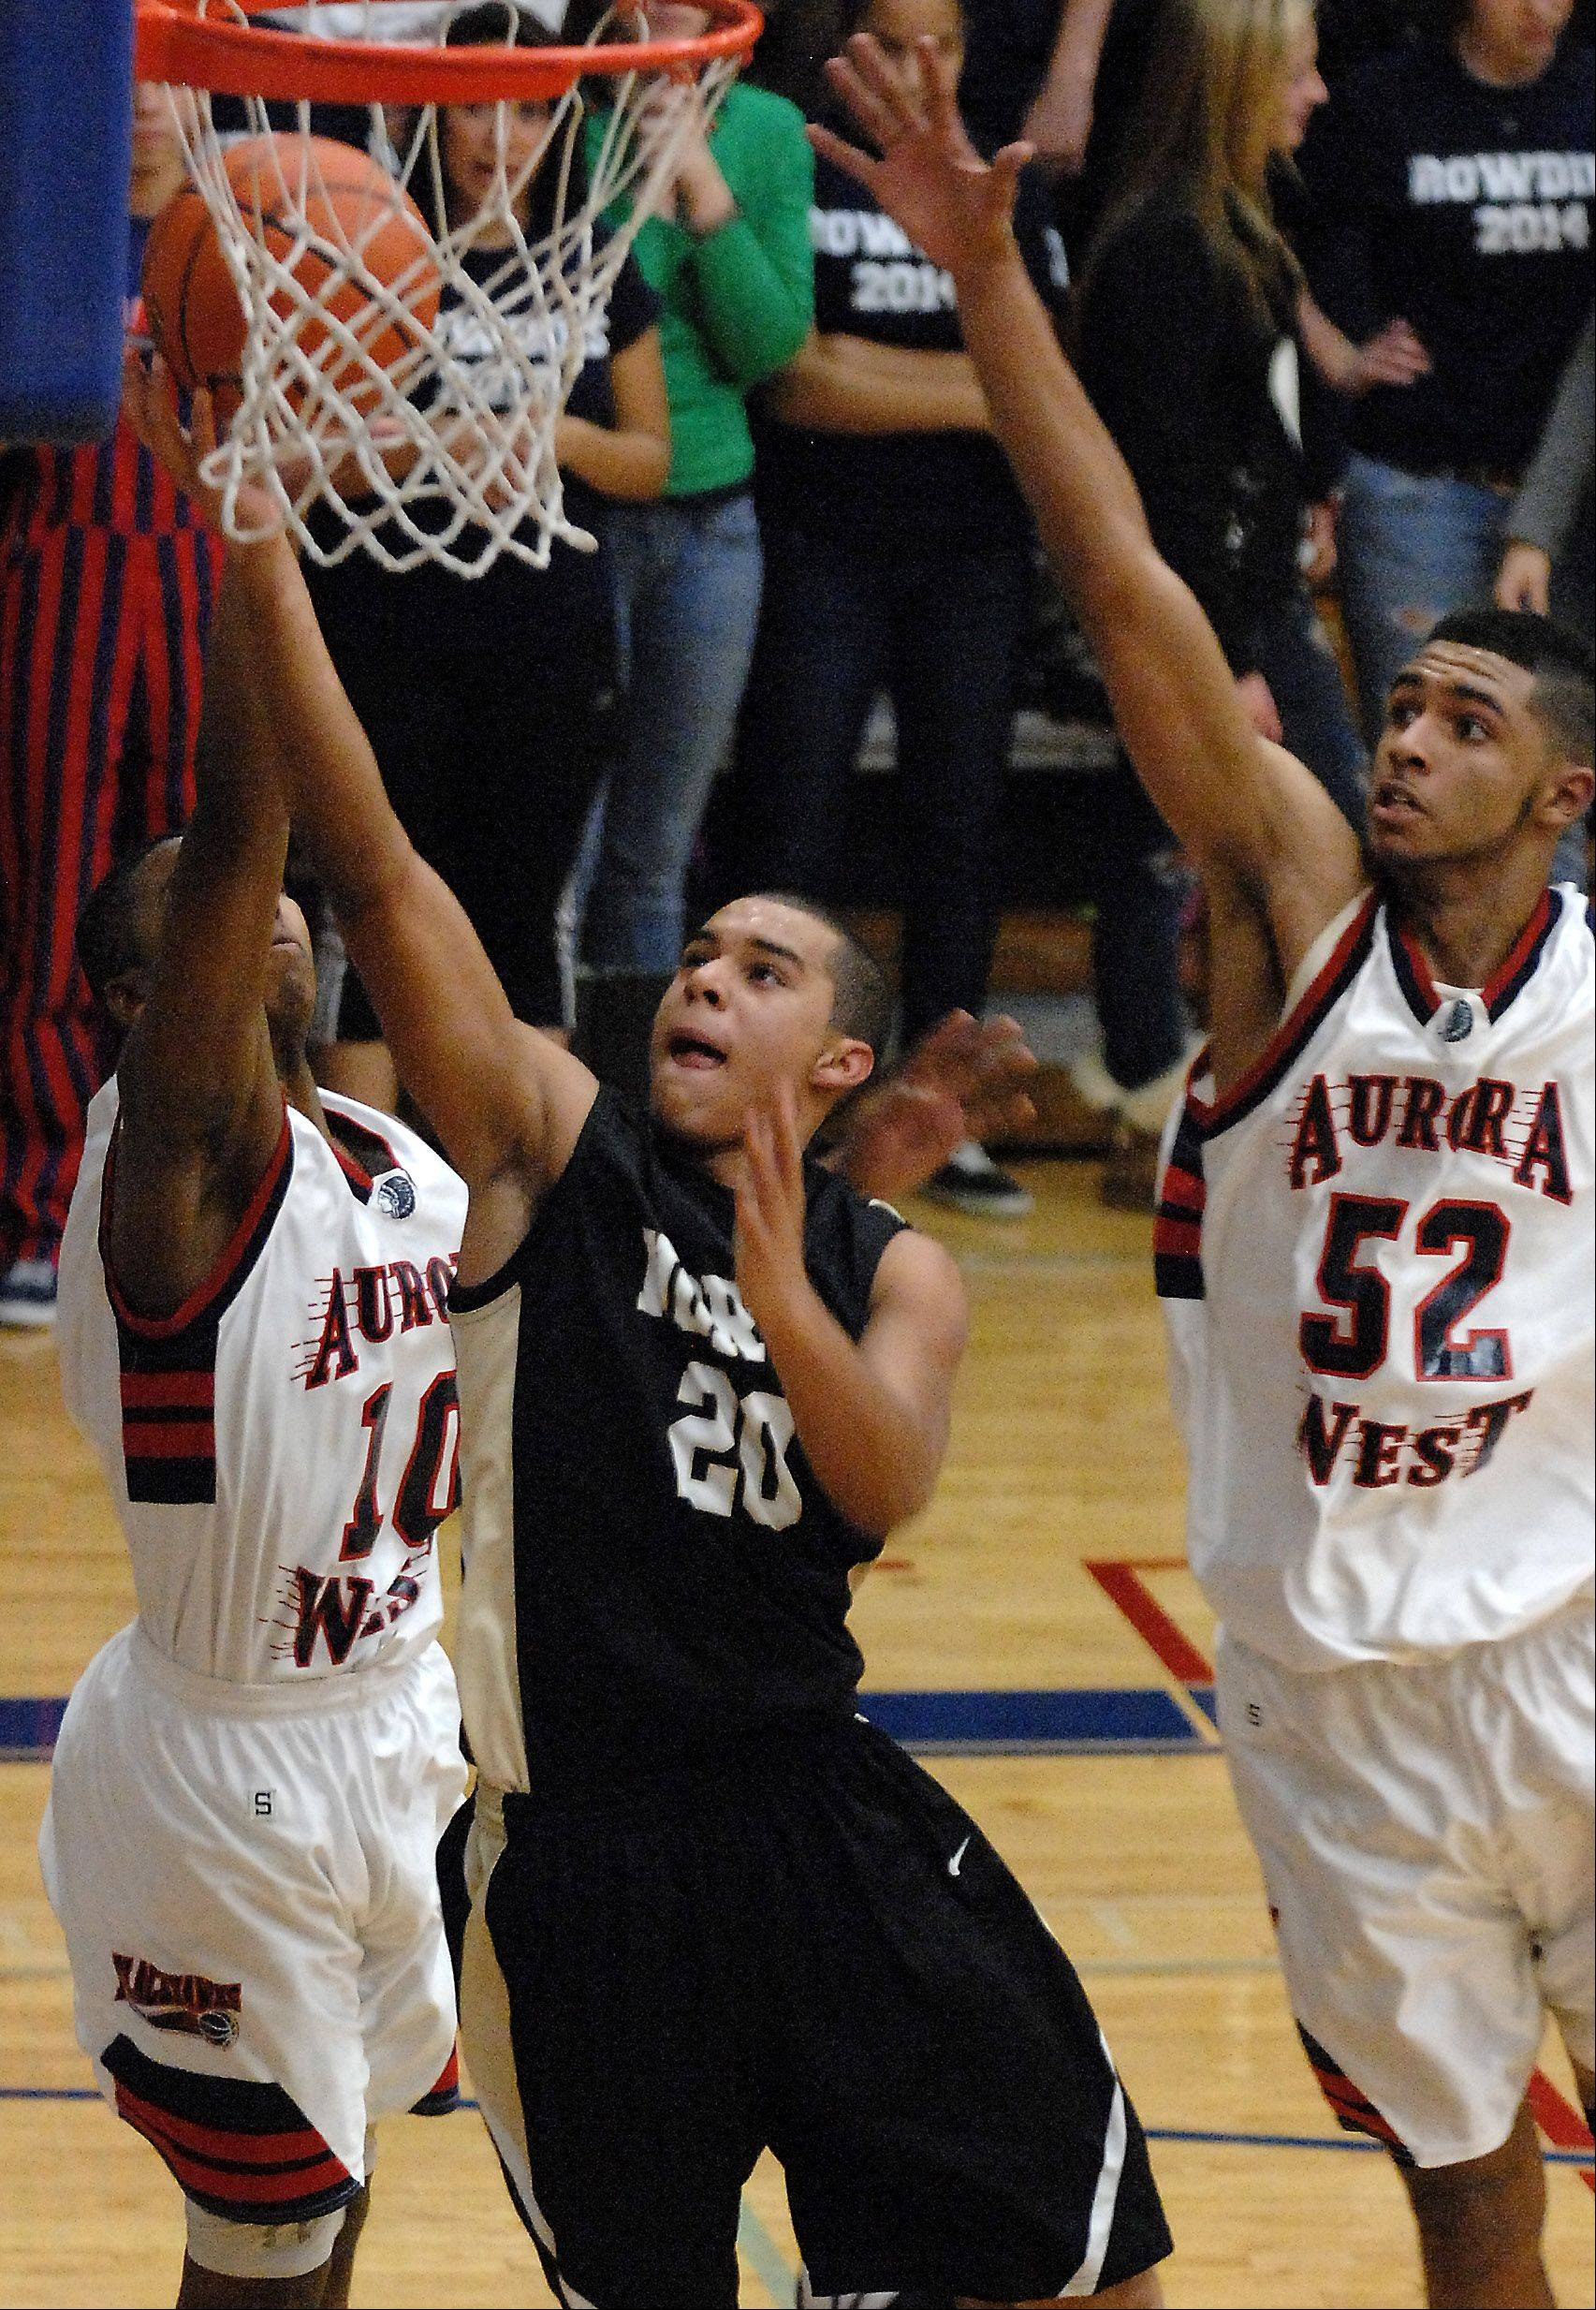 Glenbard North's Kendall Holbert scores between a pair of West Aurora defenders.